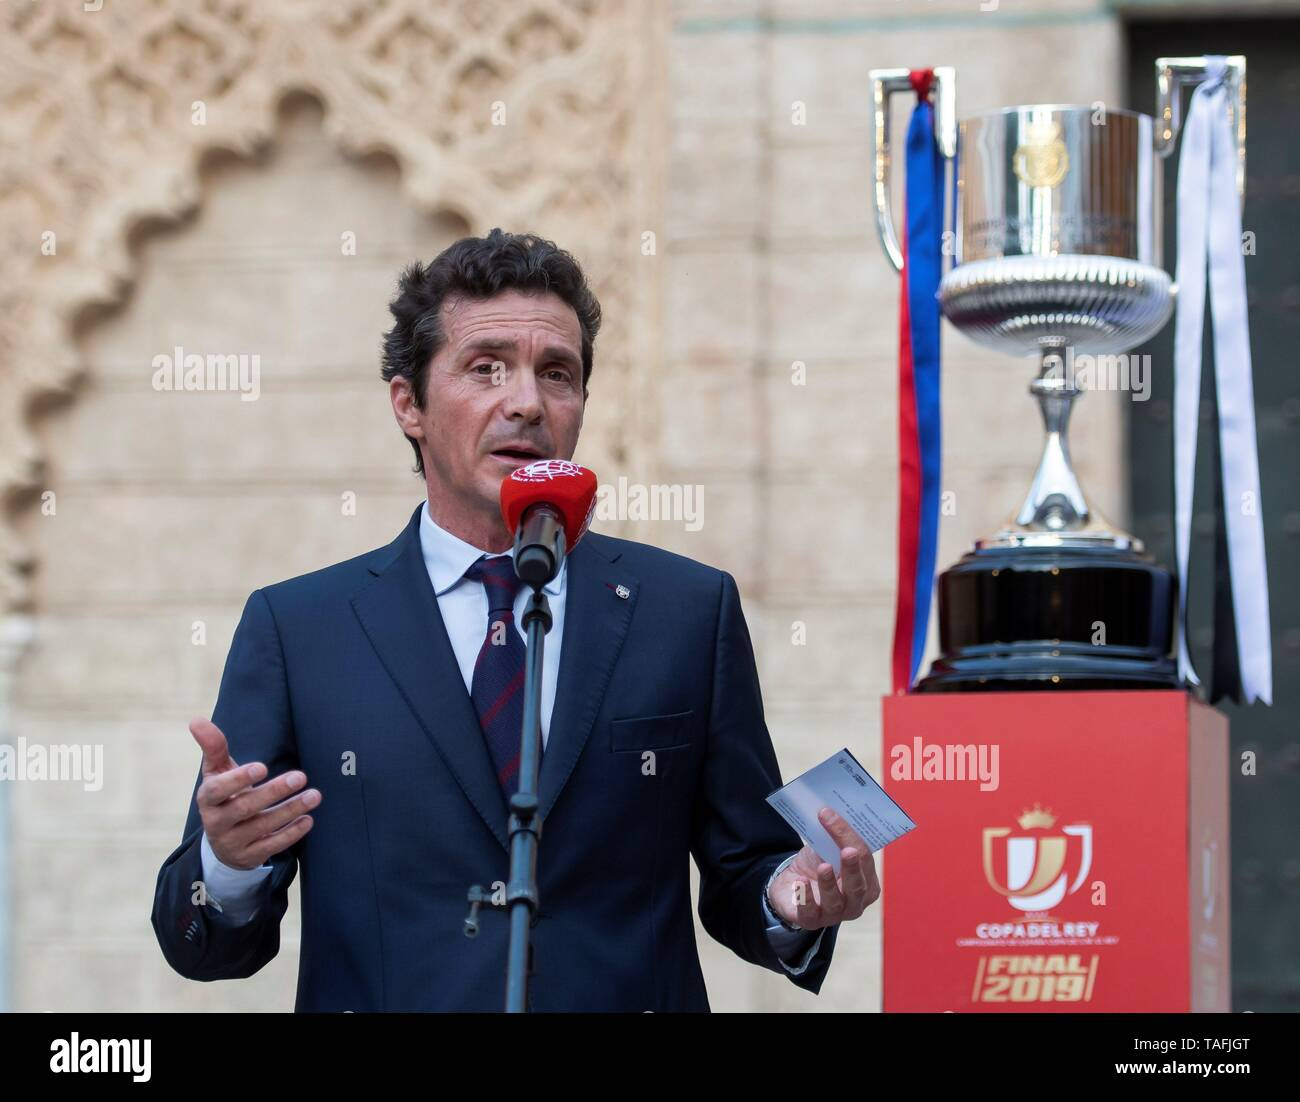 Sevilla, Spain. 24th May, 2019. The Director of Institutional Relations of Futbol Club Barcelona Guillermo Amor delivers a speech during a official dinner ahead Spanish King's Cup final match, at Real Alcazar, in Sevilla, Andalusia, Spain, 24 May 2019. Valencia CF will face FC Barcelona on a Spanish King's Cup final match in Sevilla on 25 May. Credit: Raul Caro/EFE/Alamy Live News - Stock Image